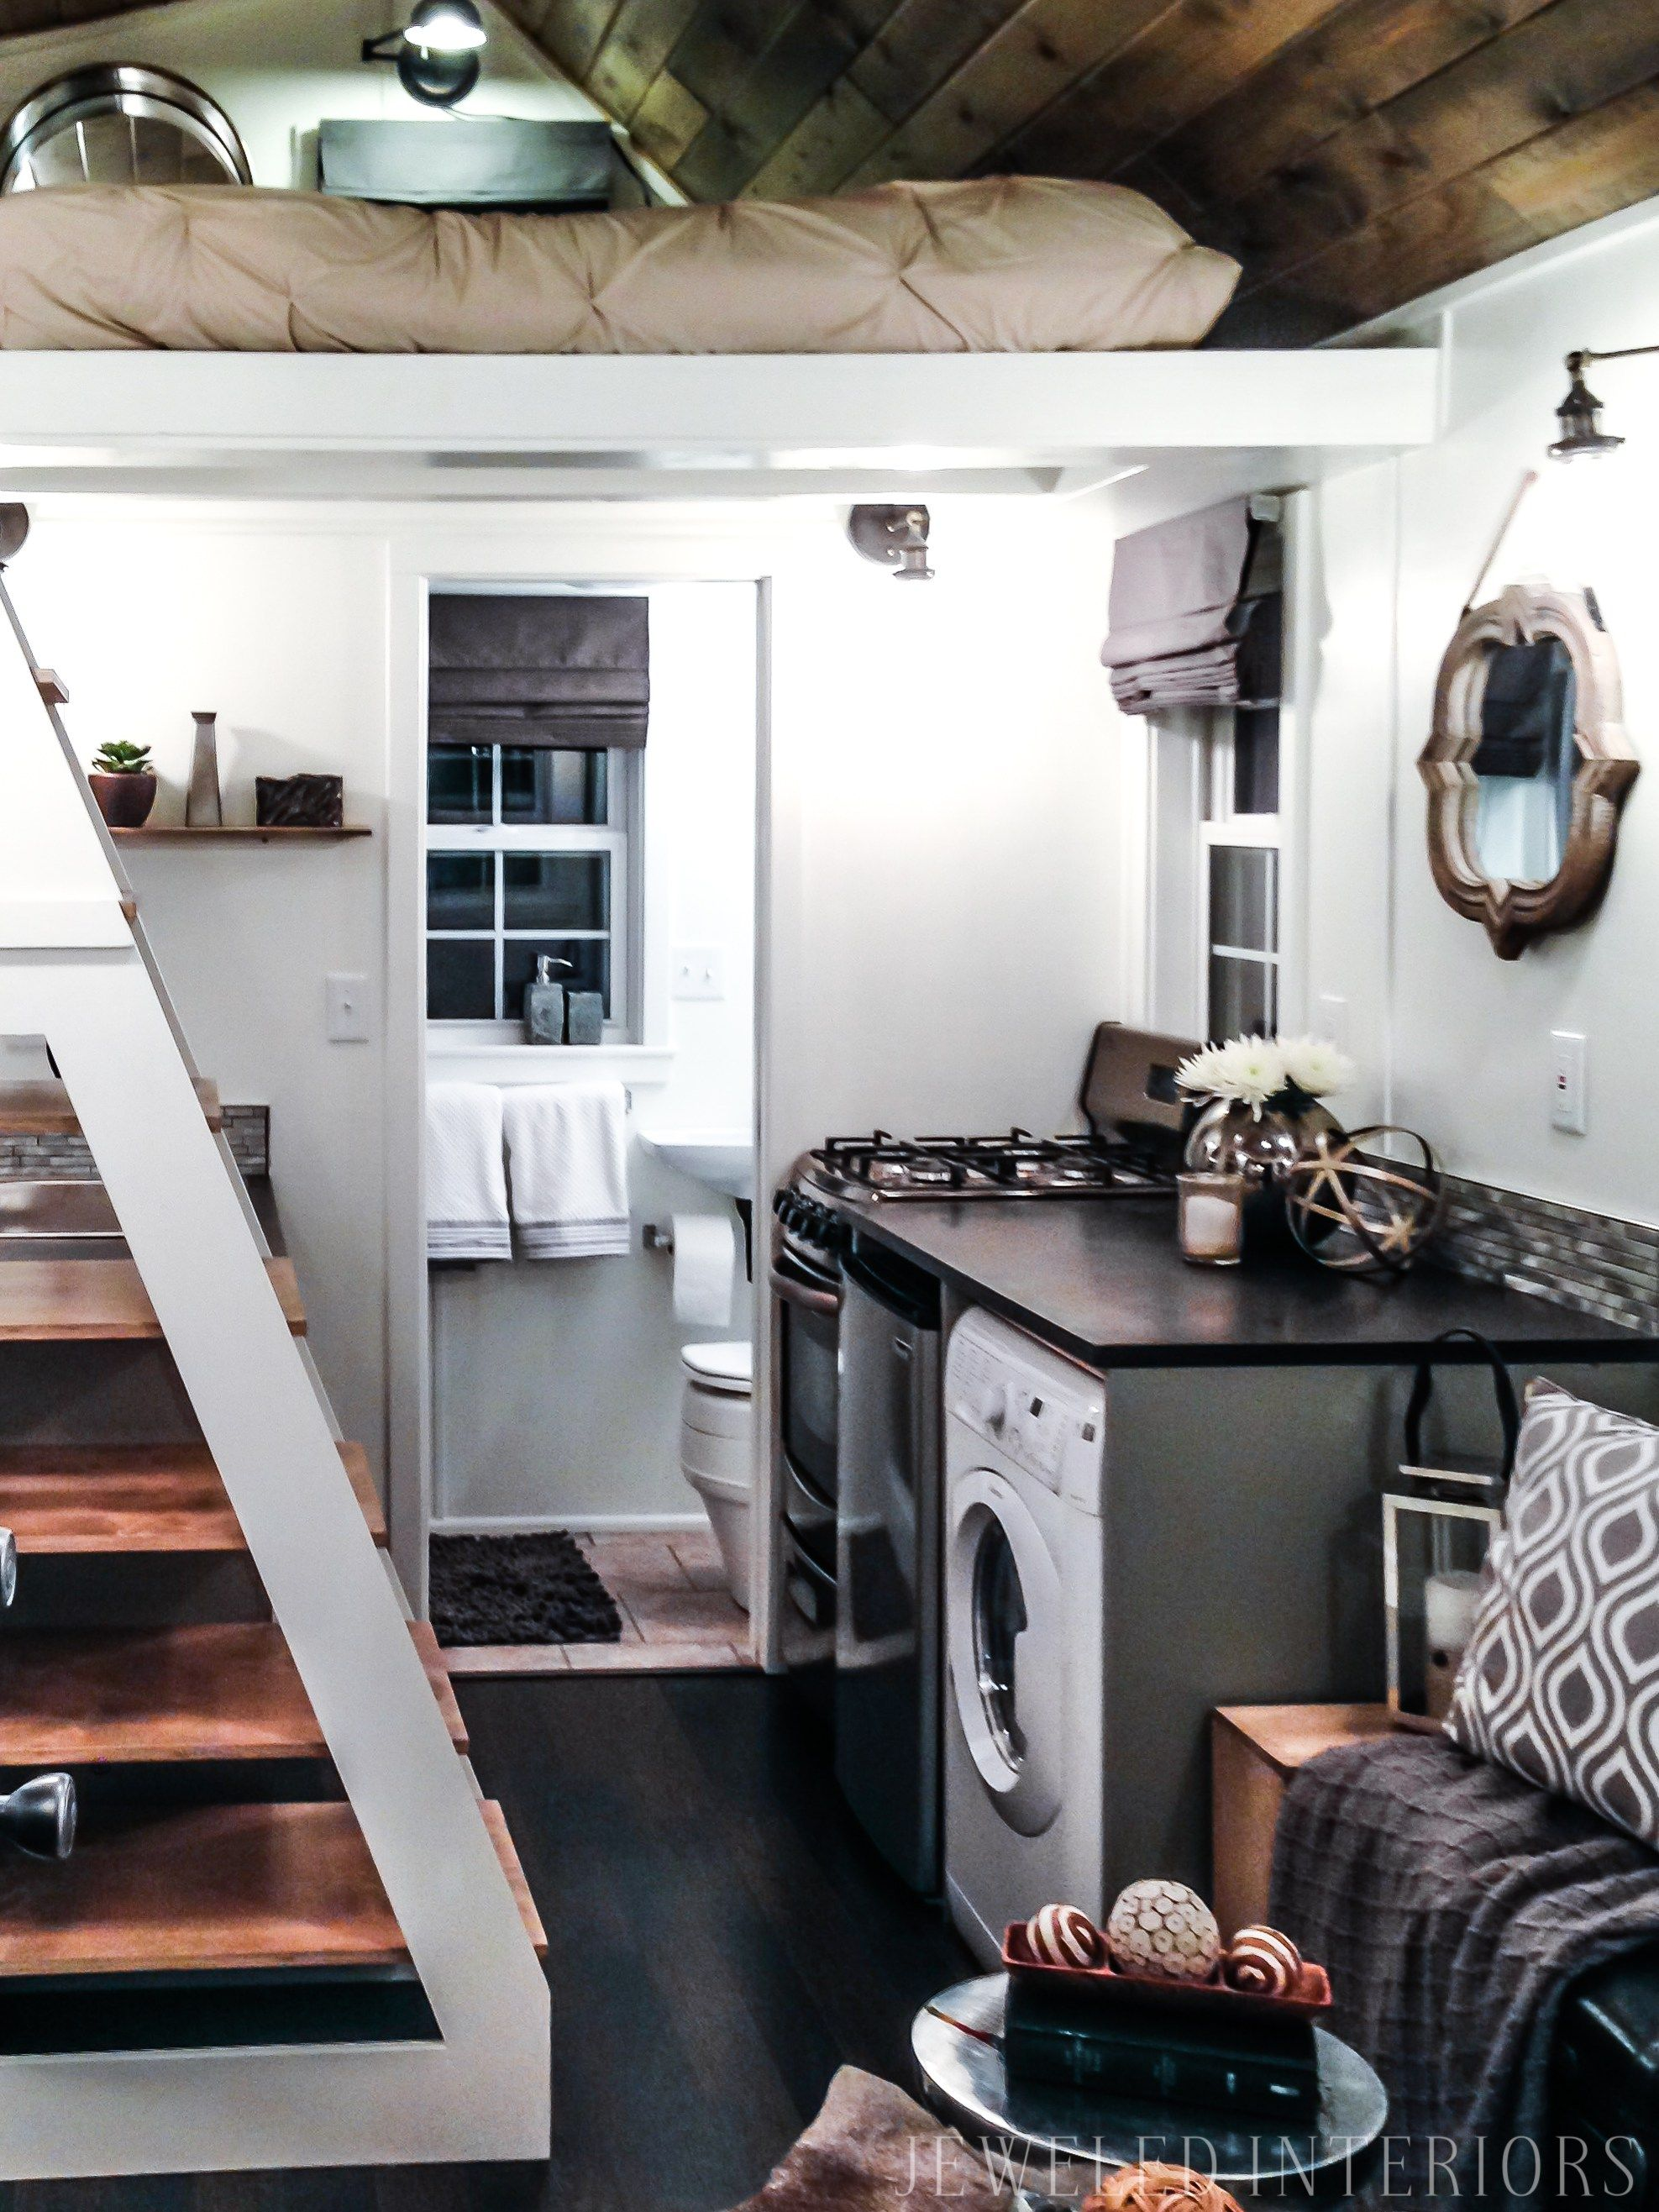 tiny home tiny house jeweled interiors porch kitchen living room bedroom kitchen wheels loft decorate design beautiful stunning rustic chic  [ 1975 x 2633 Pixel ]